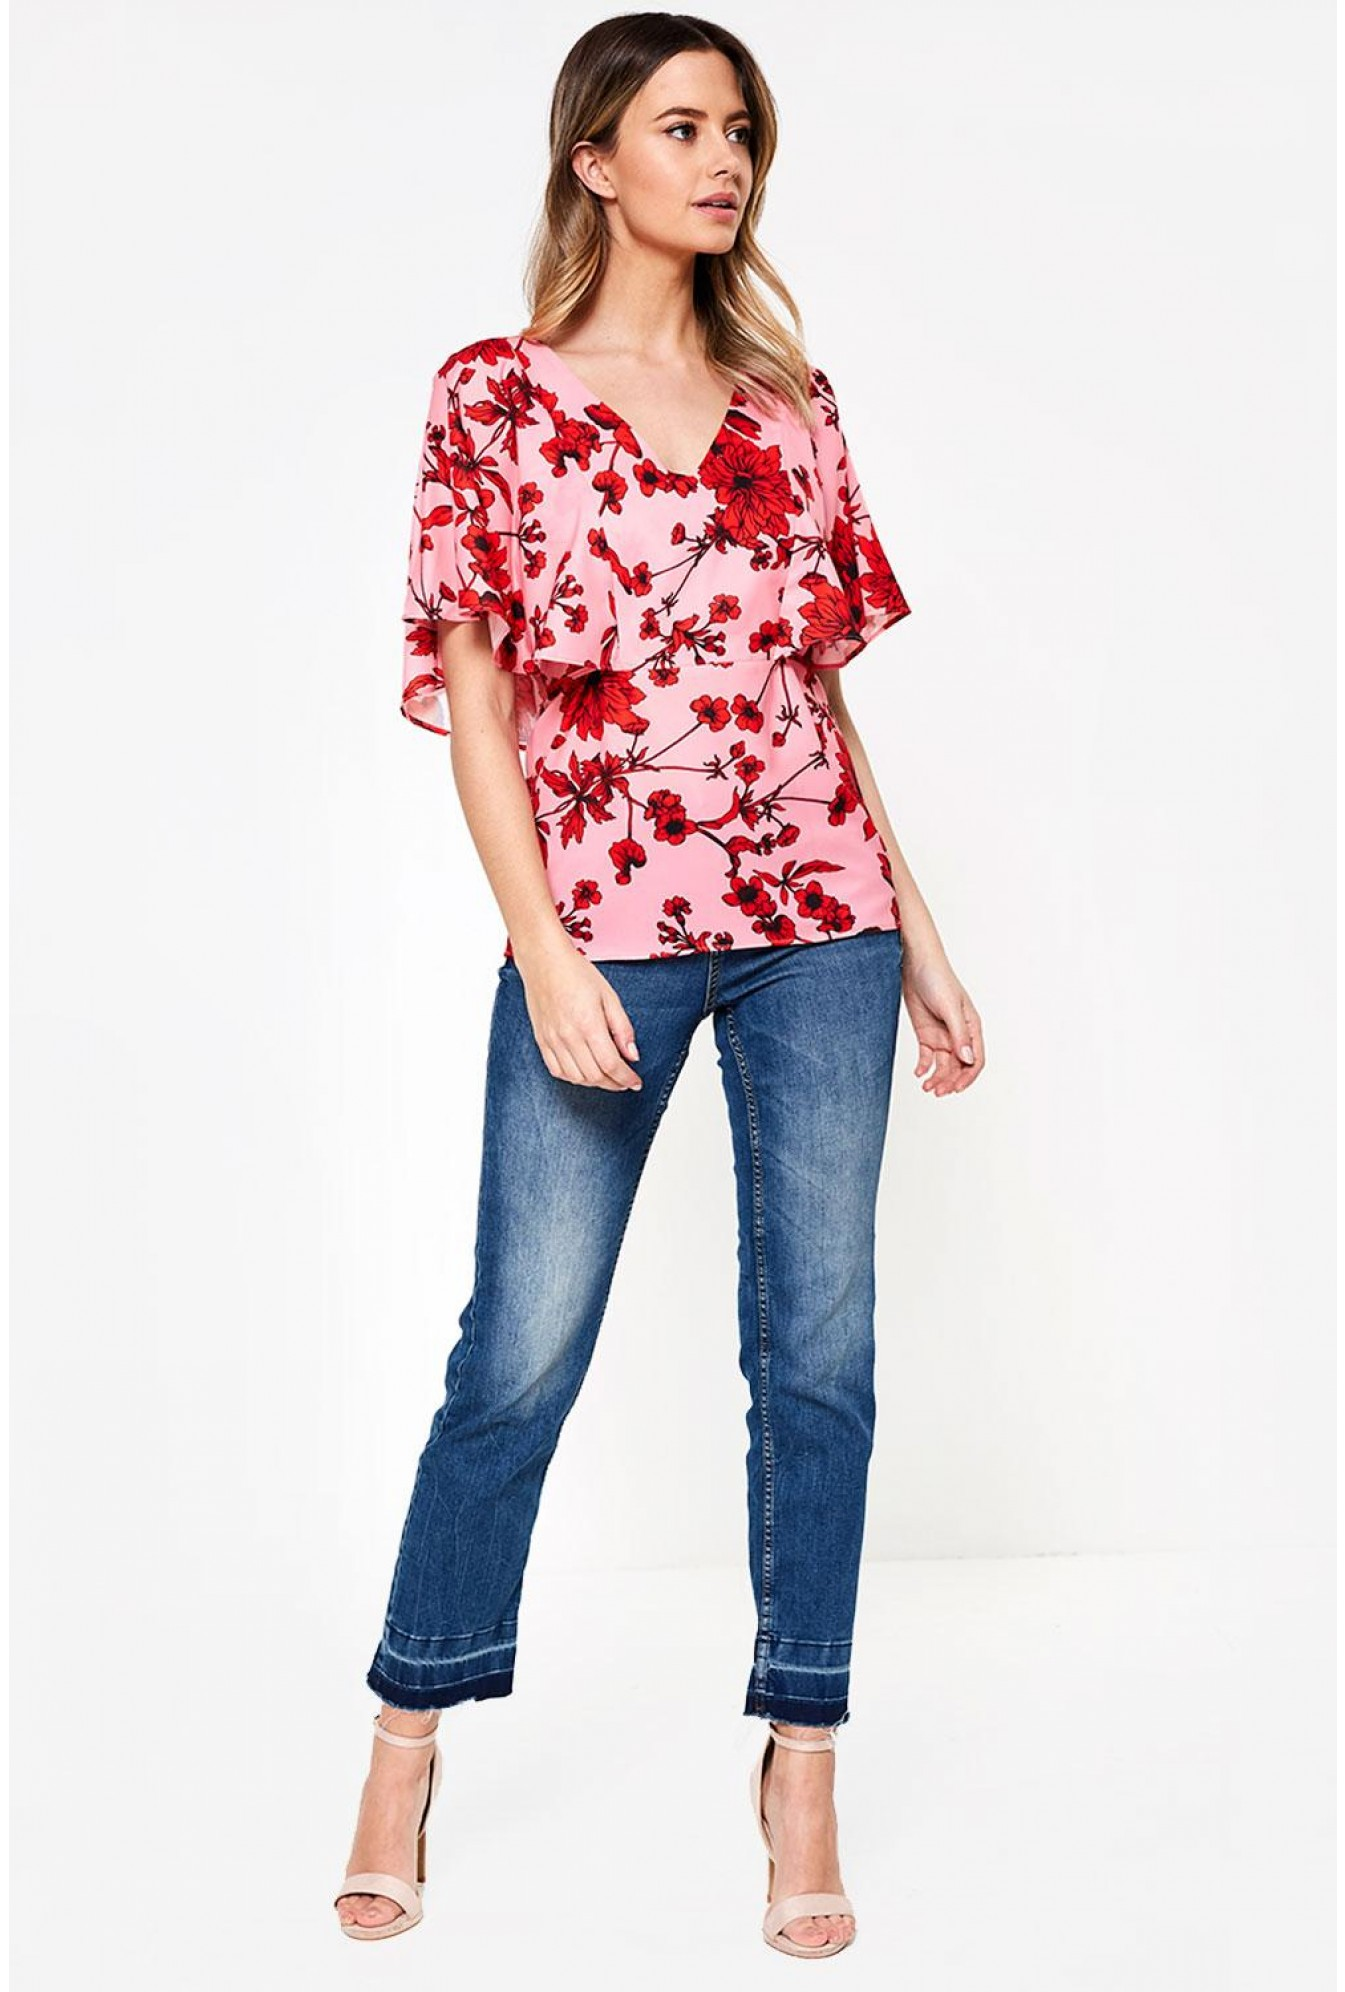 ed409450eb9a08 More Views. Enna Floral Print Top in Pink